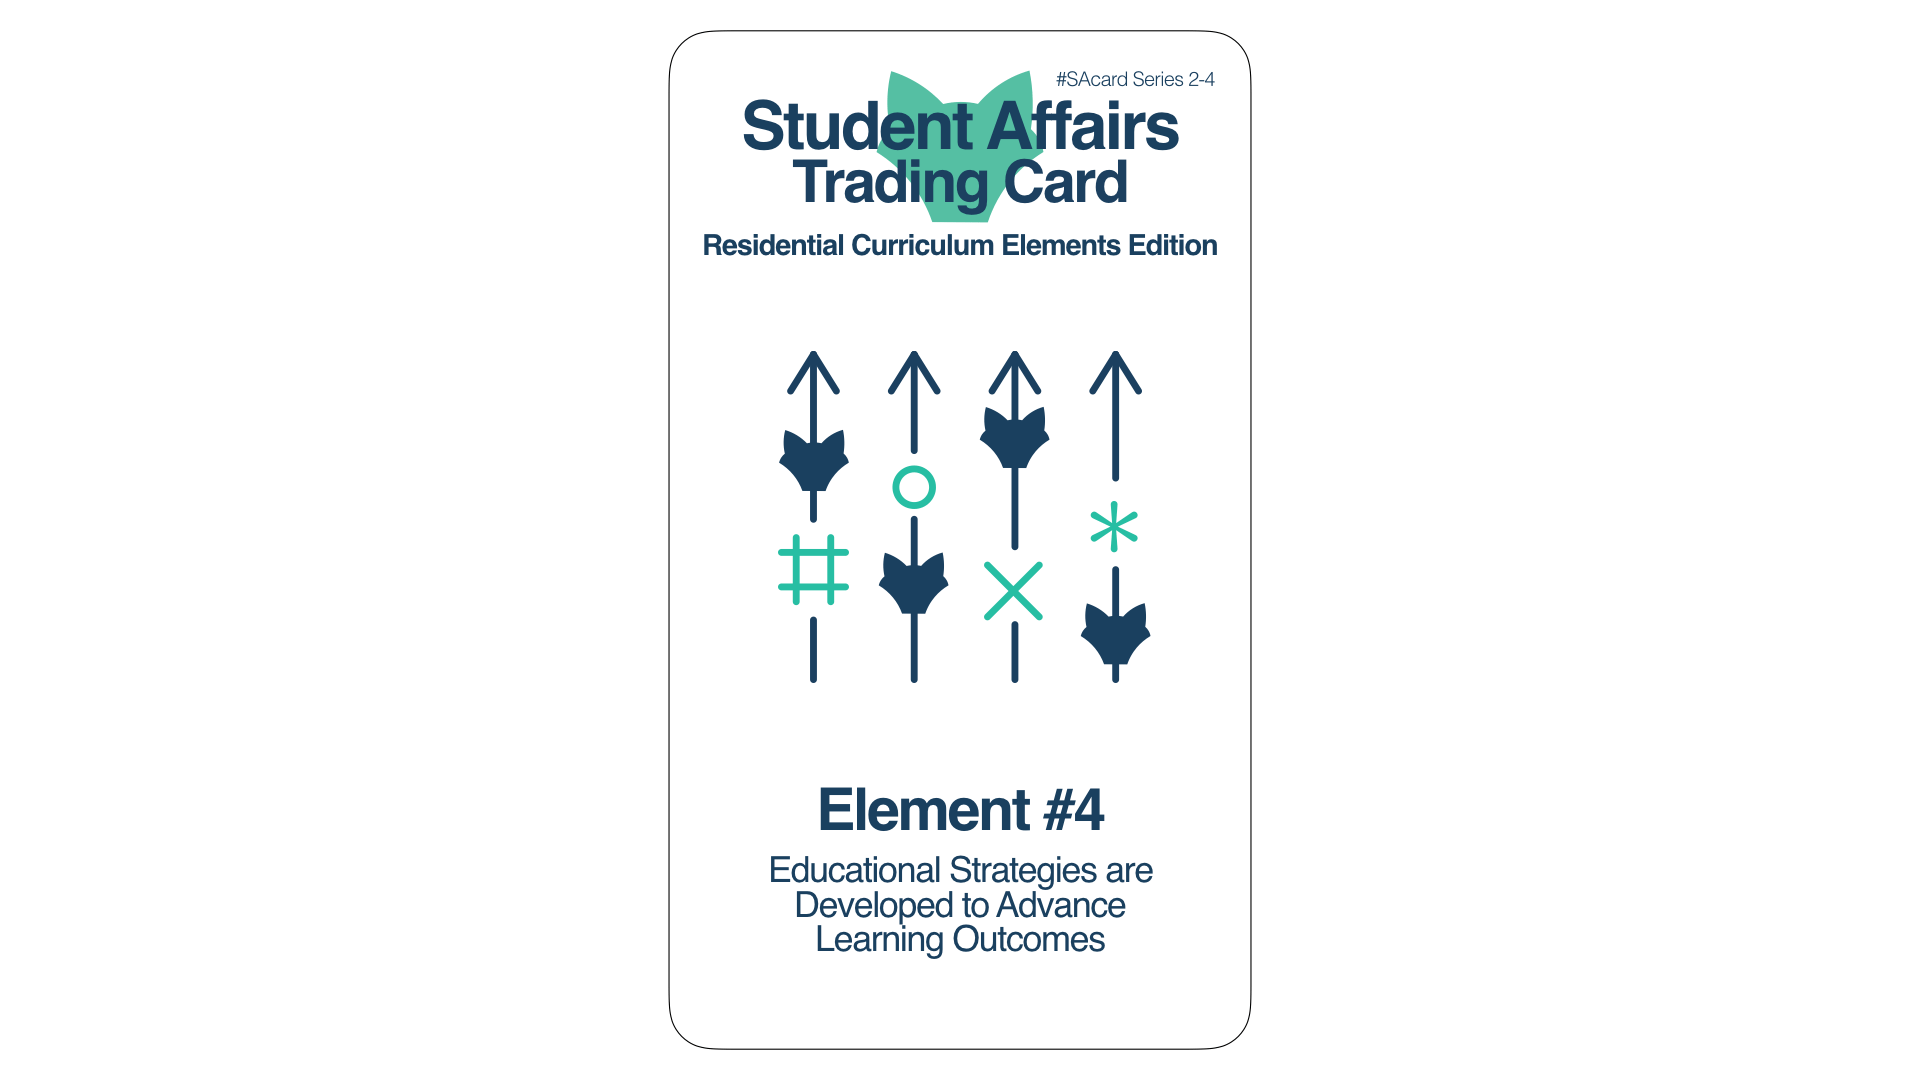 Student Affairs Trading Card 2-4: Residential Curriculum Element 4